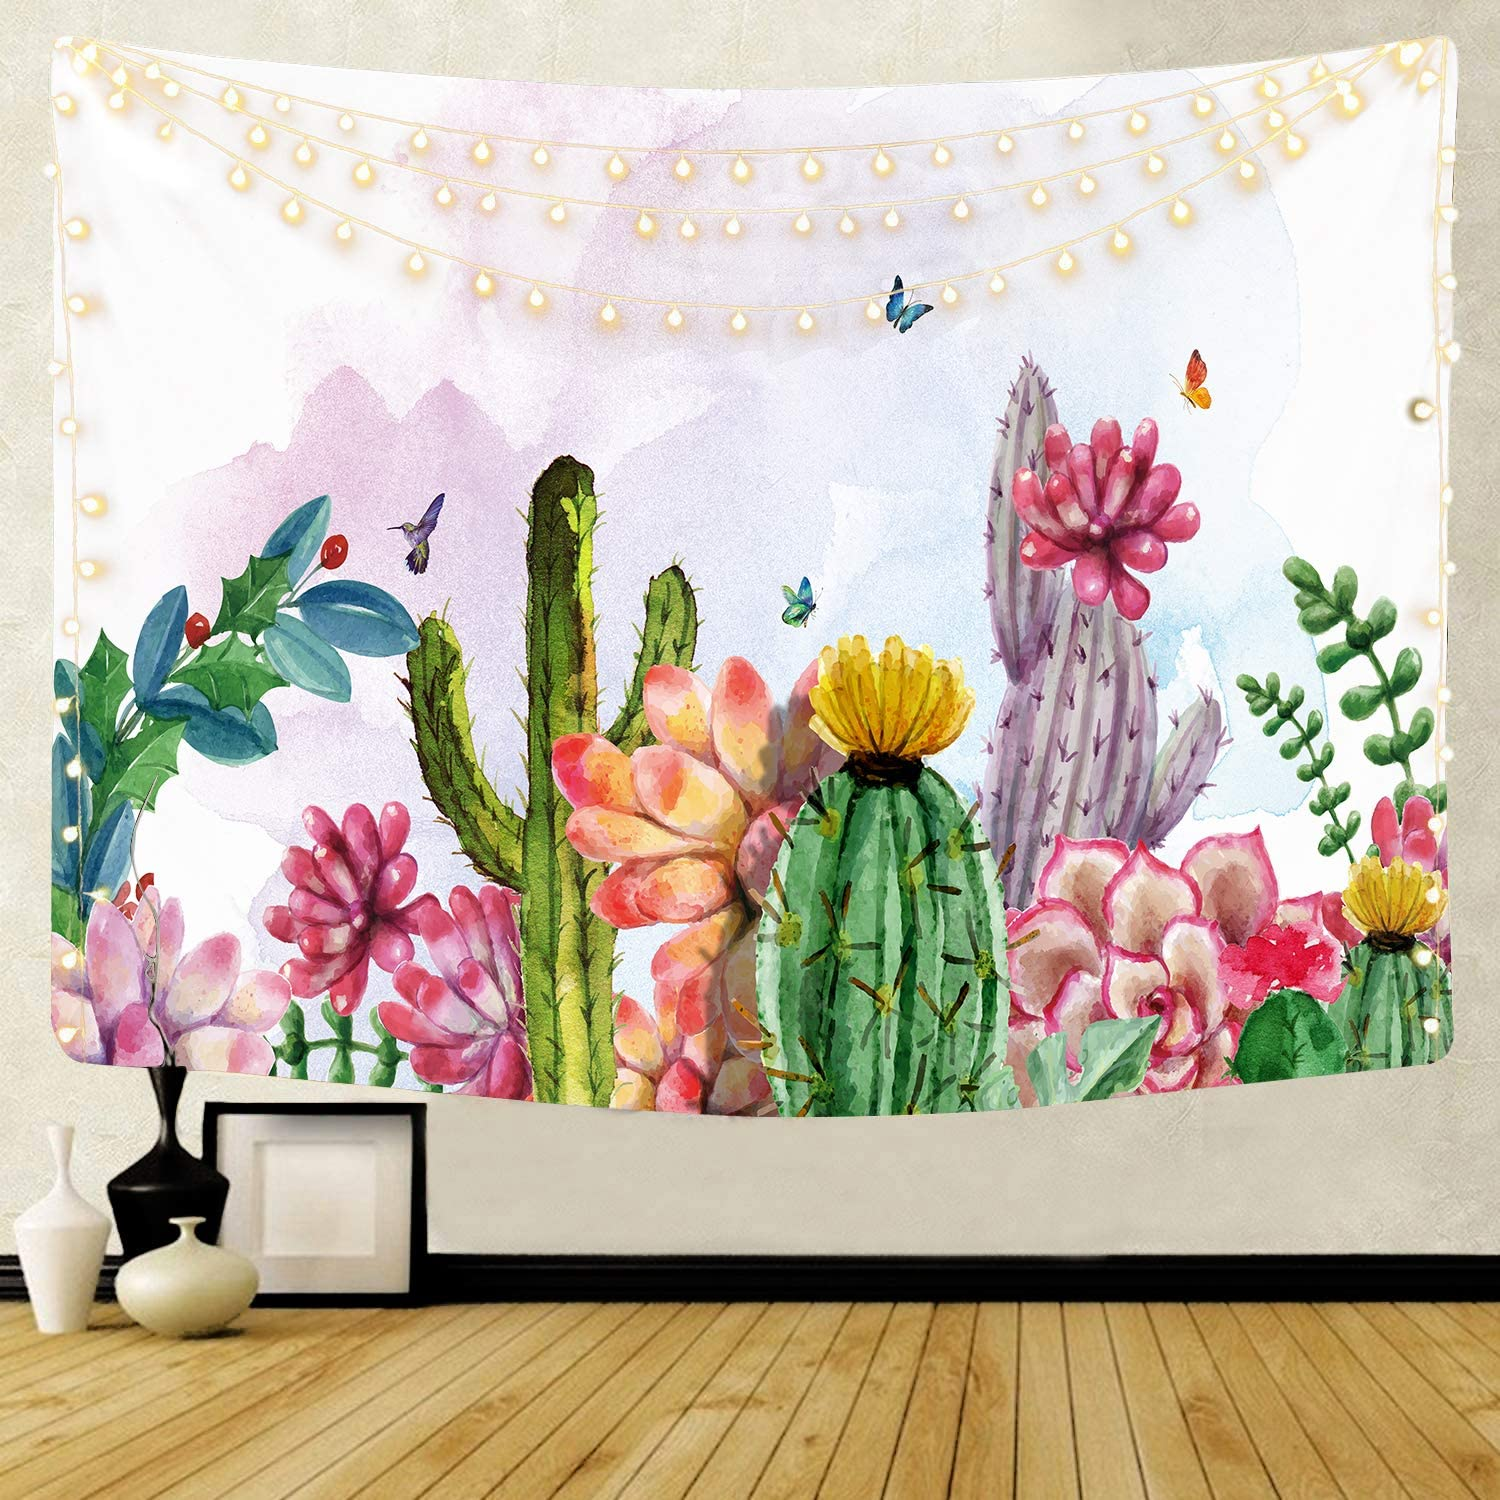 TIAQUN Cactus Tapestry,Watercolor Flower Cactus Tapestry Wall HangingTropical Landscape Desert Succulent Plant Tapestry for Home Decor.59x51Inch